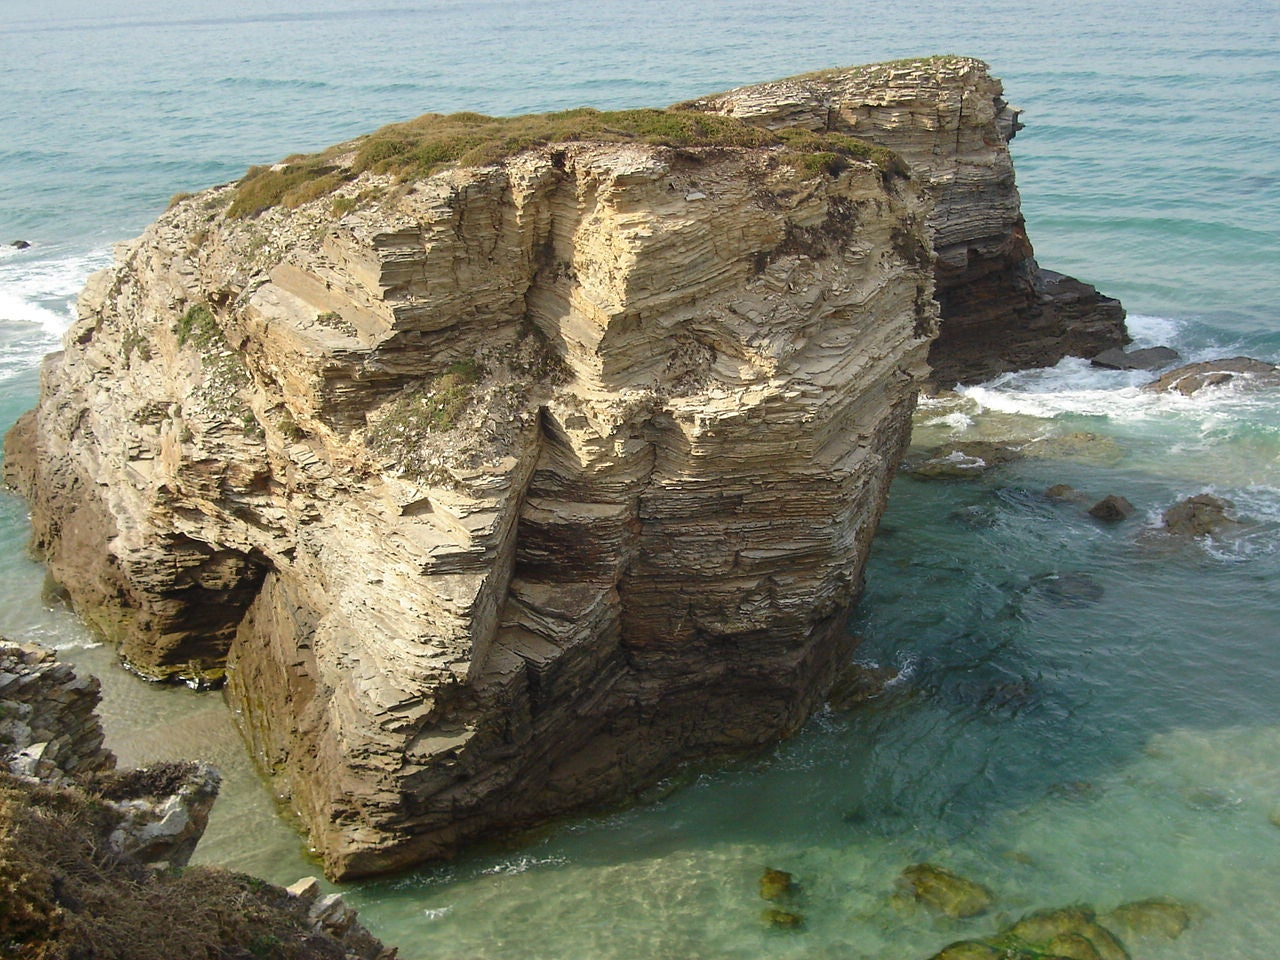 Klippe en Playa de Las Catedrales - As Catedrais